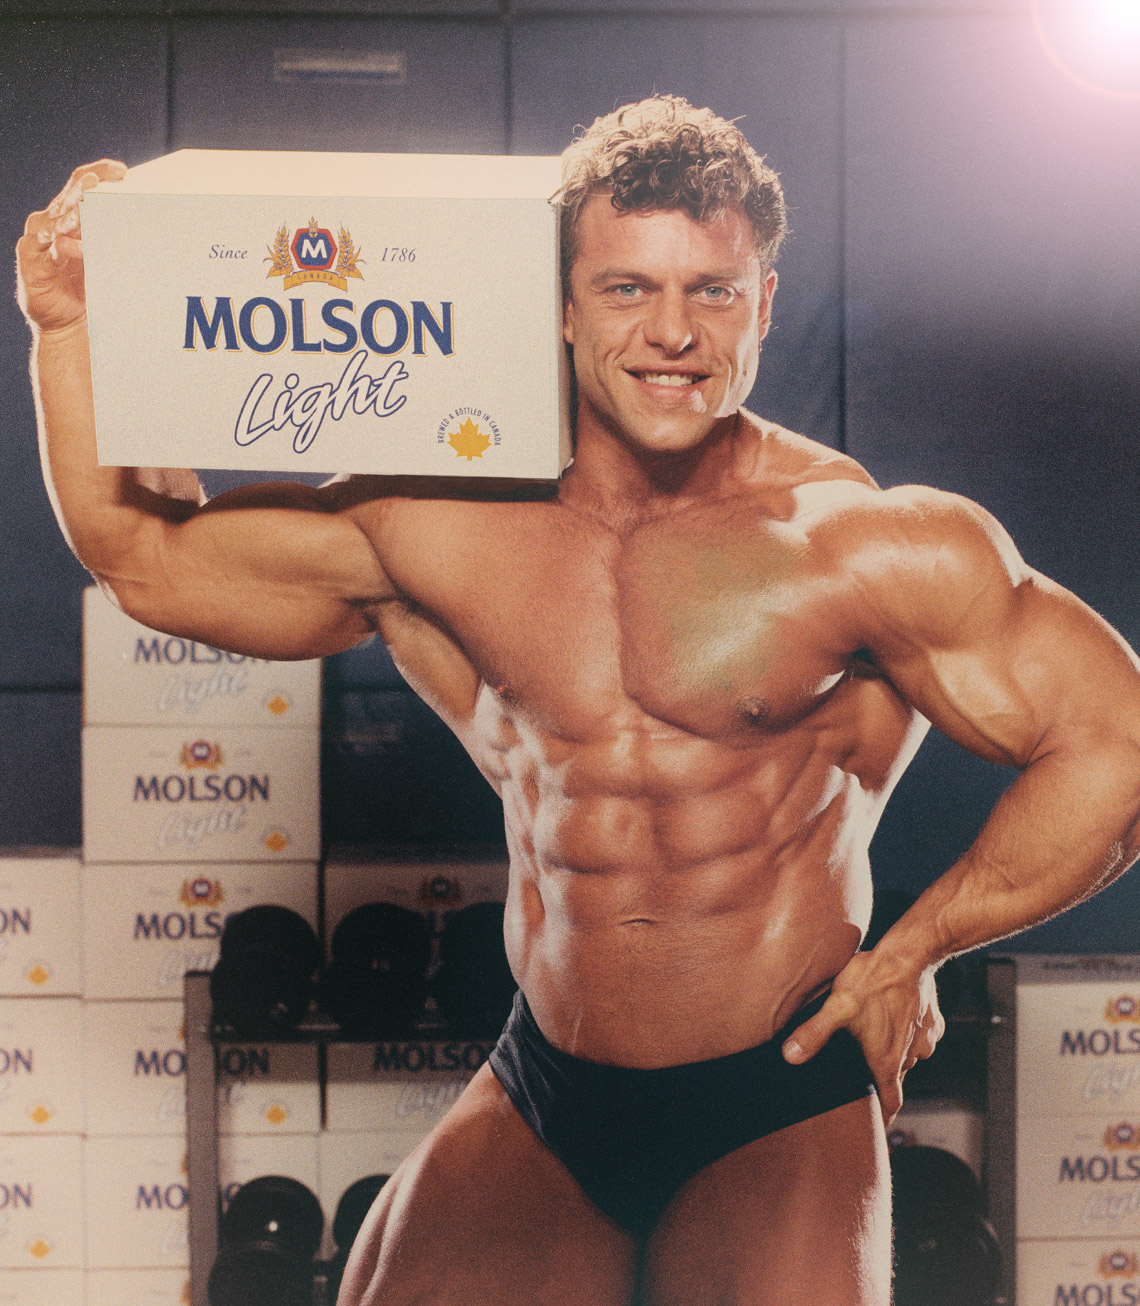 DattuWSW-Molson Light muscle guy_